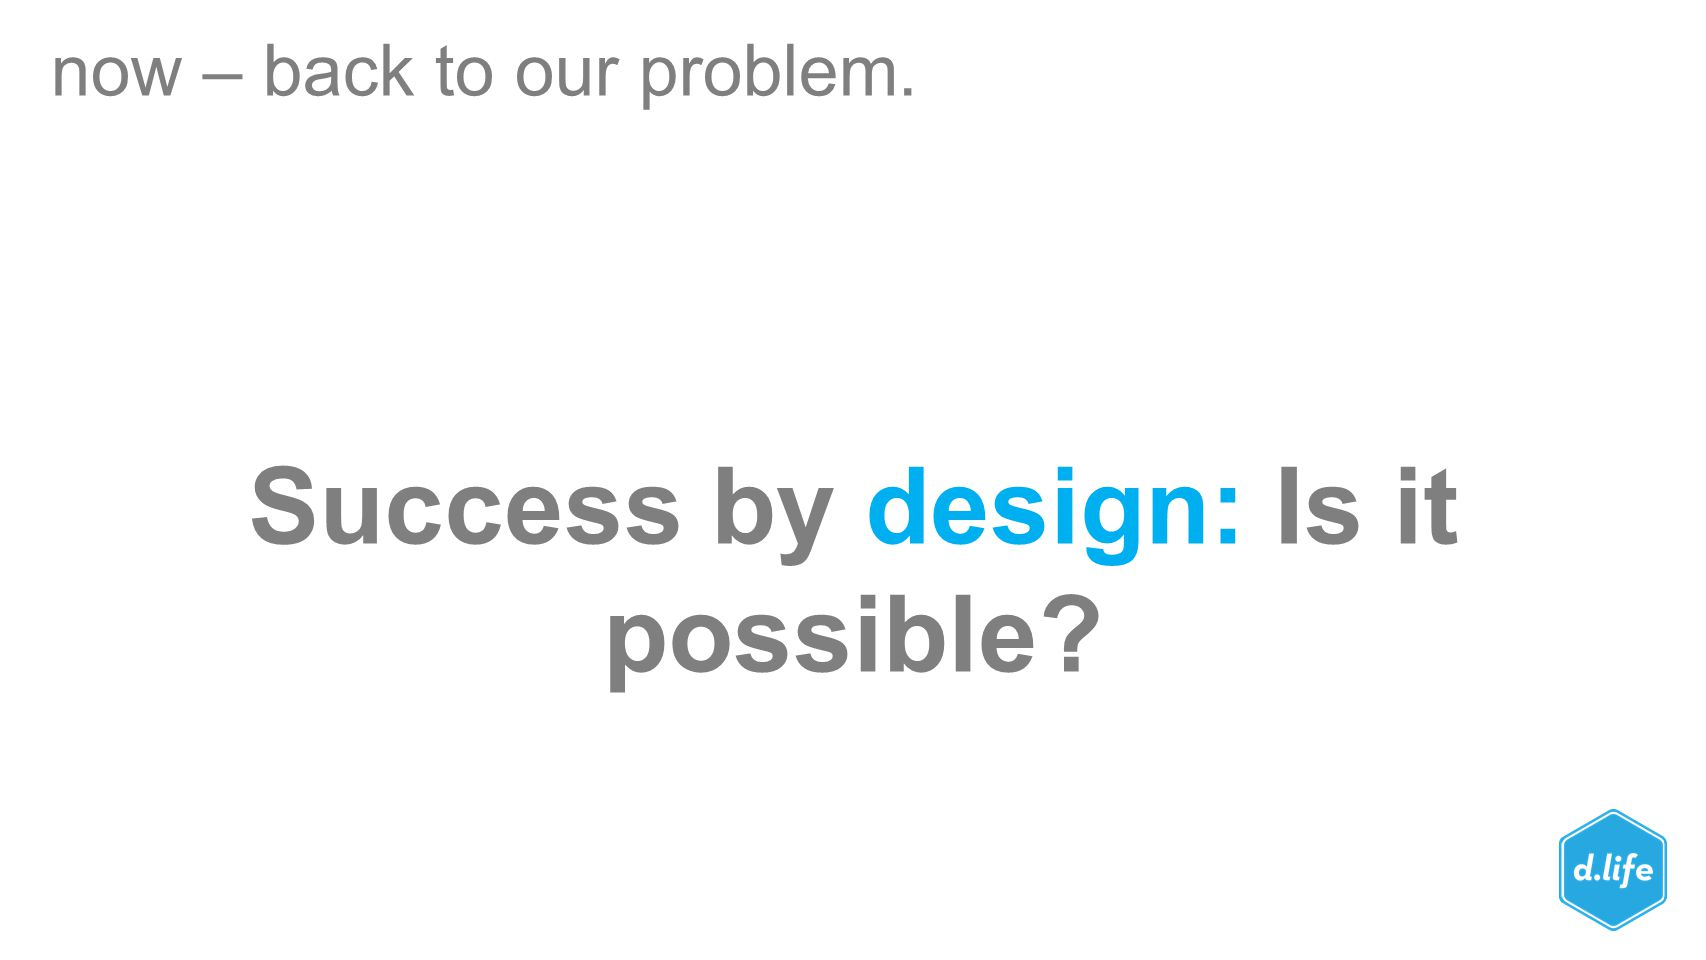 Success by design: Is it possible